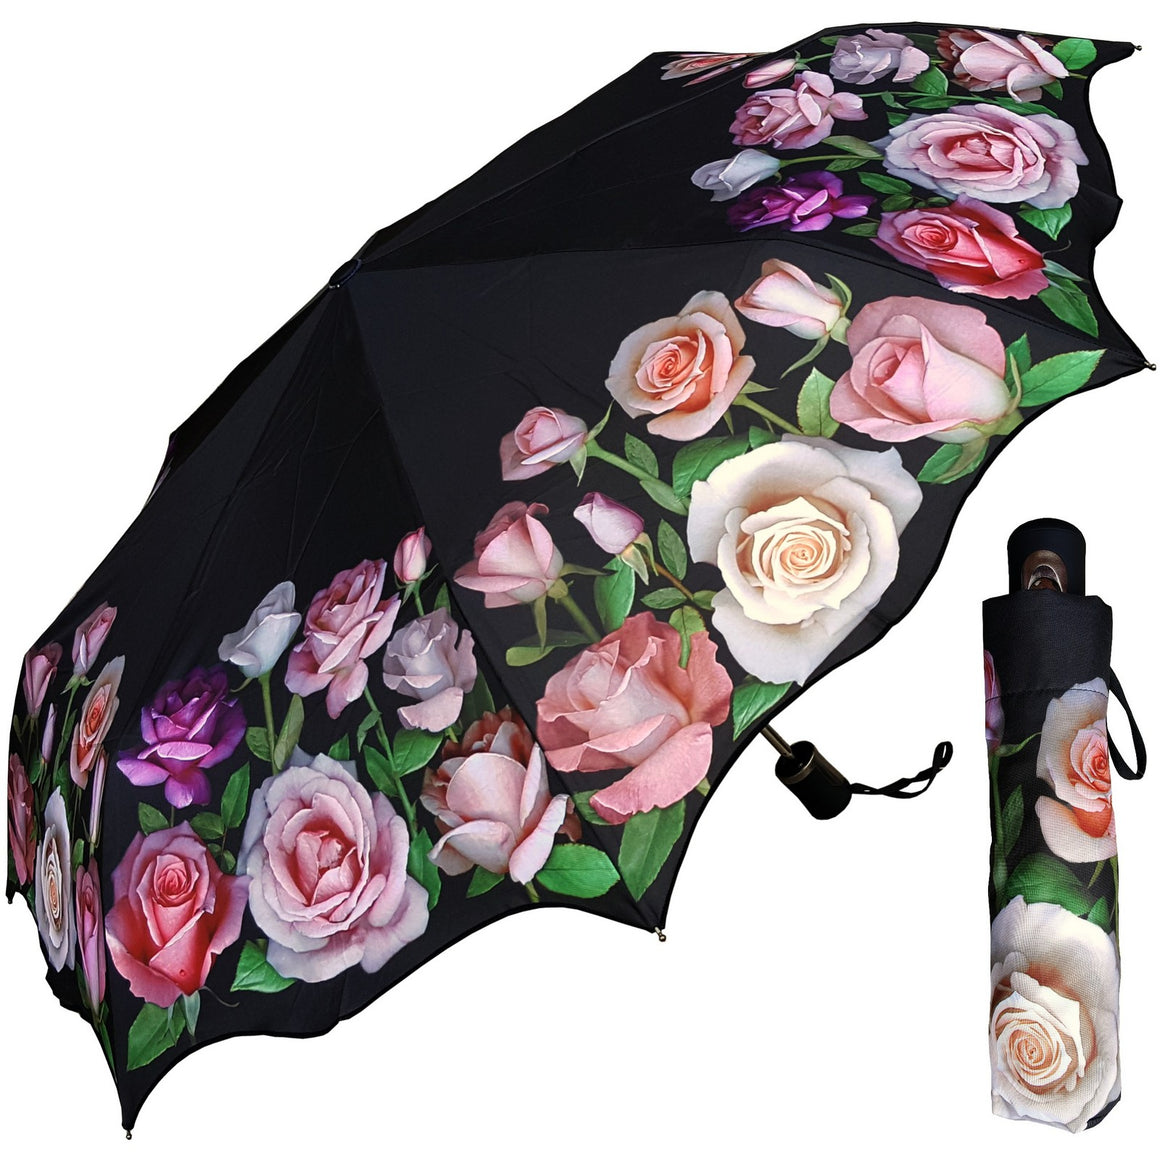 Wholesale Auto Artistic Printed Folding Umbrellas